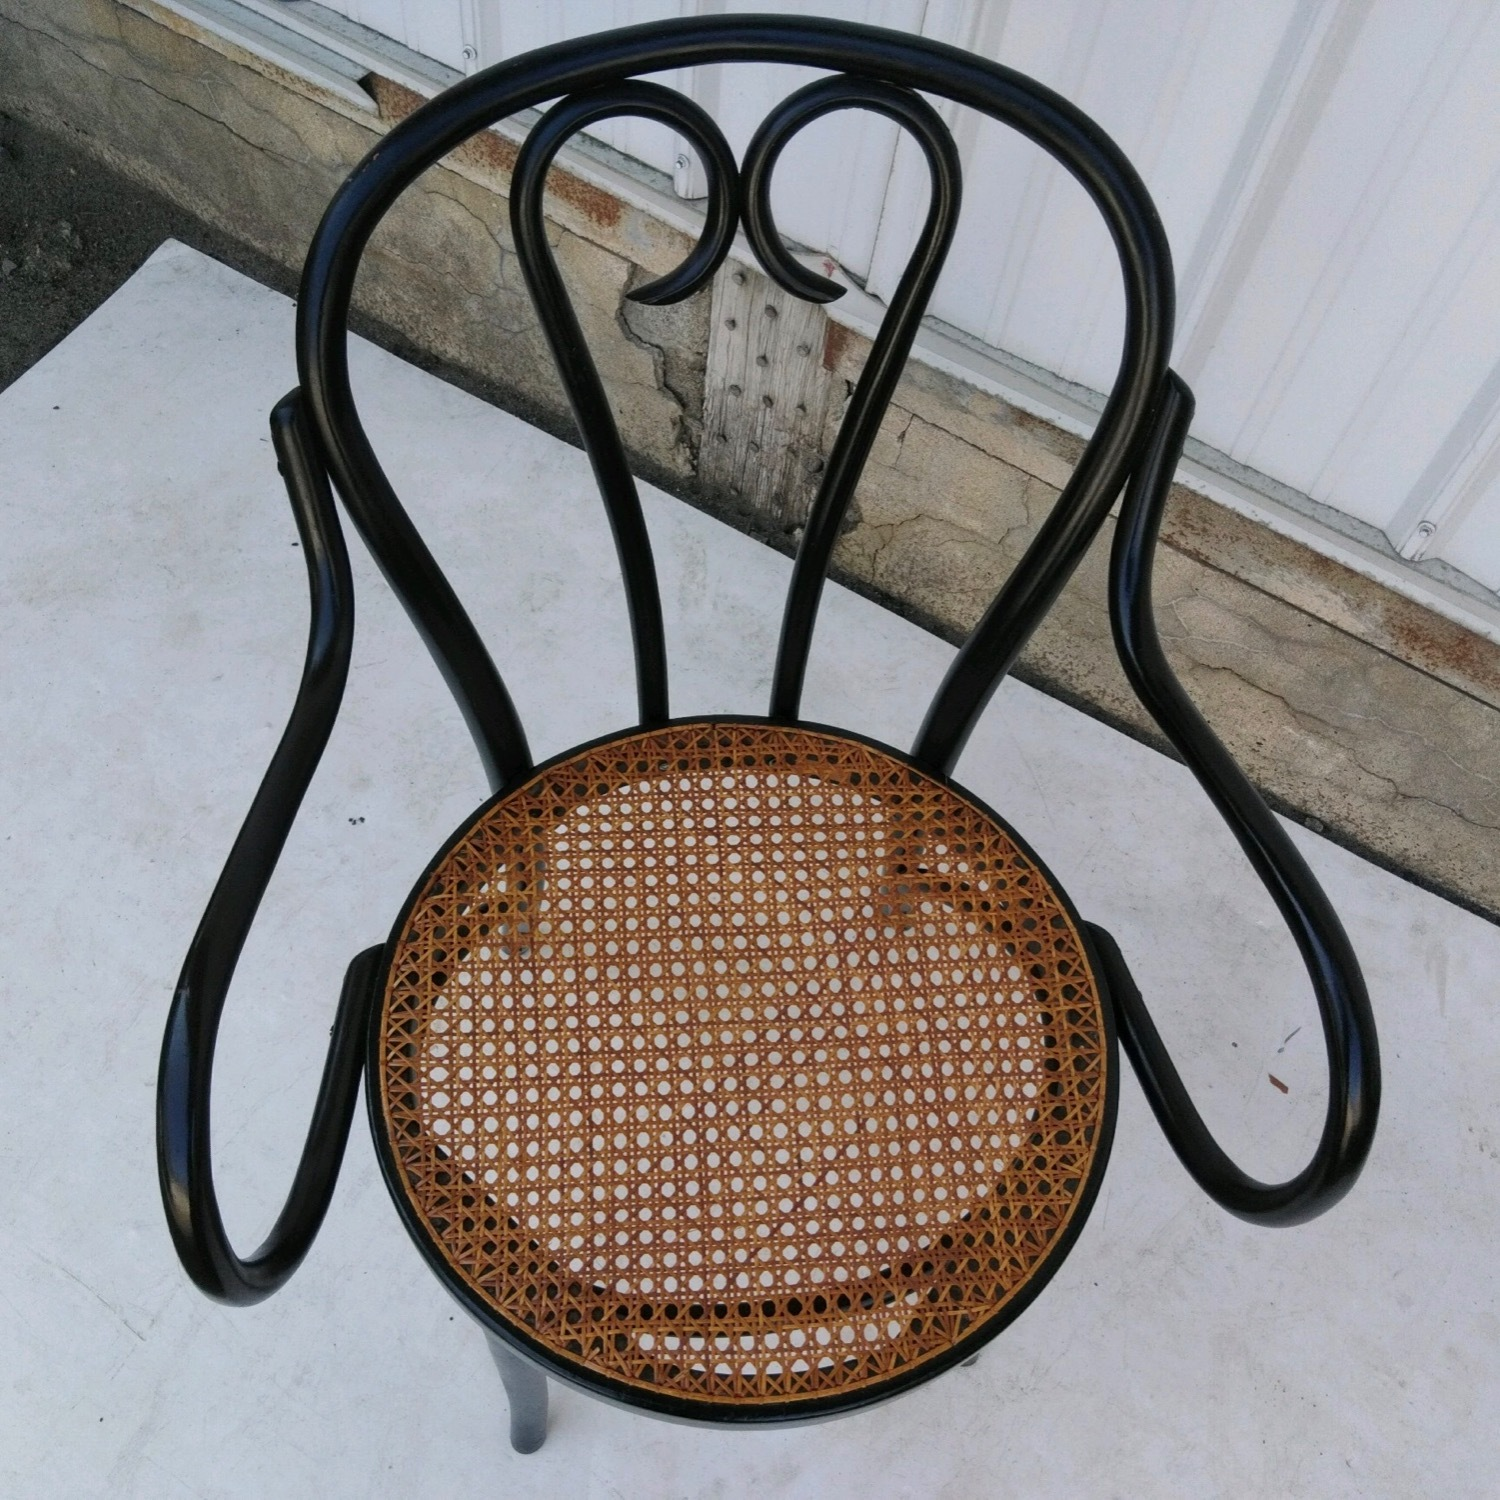 Vintage Cane Seat Accent Chair - image-1